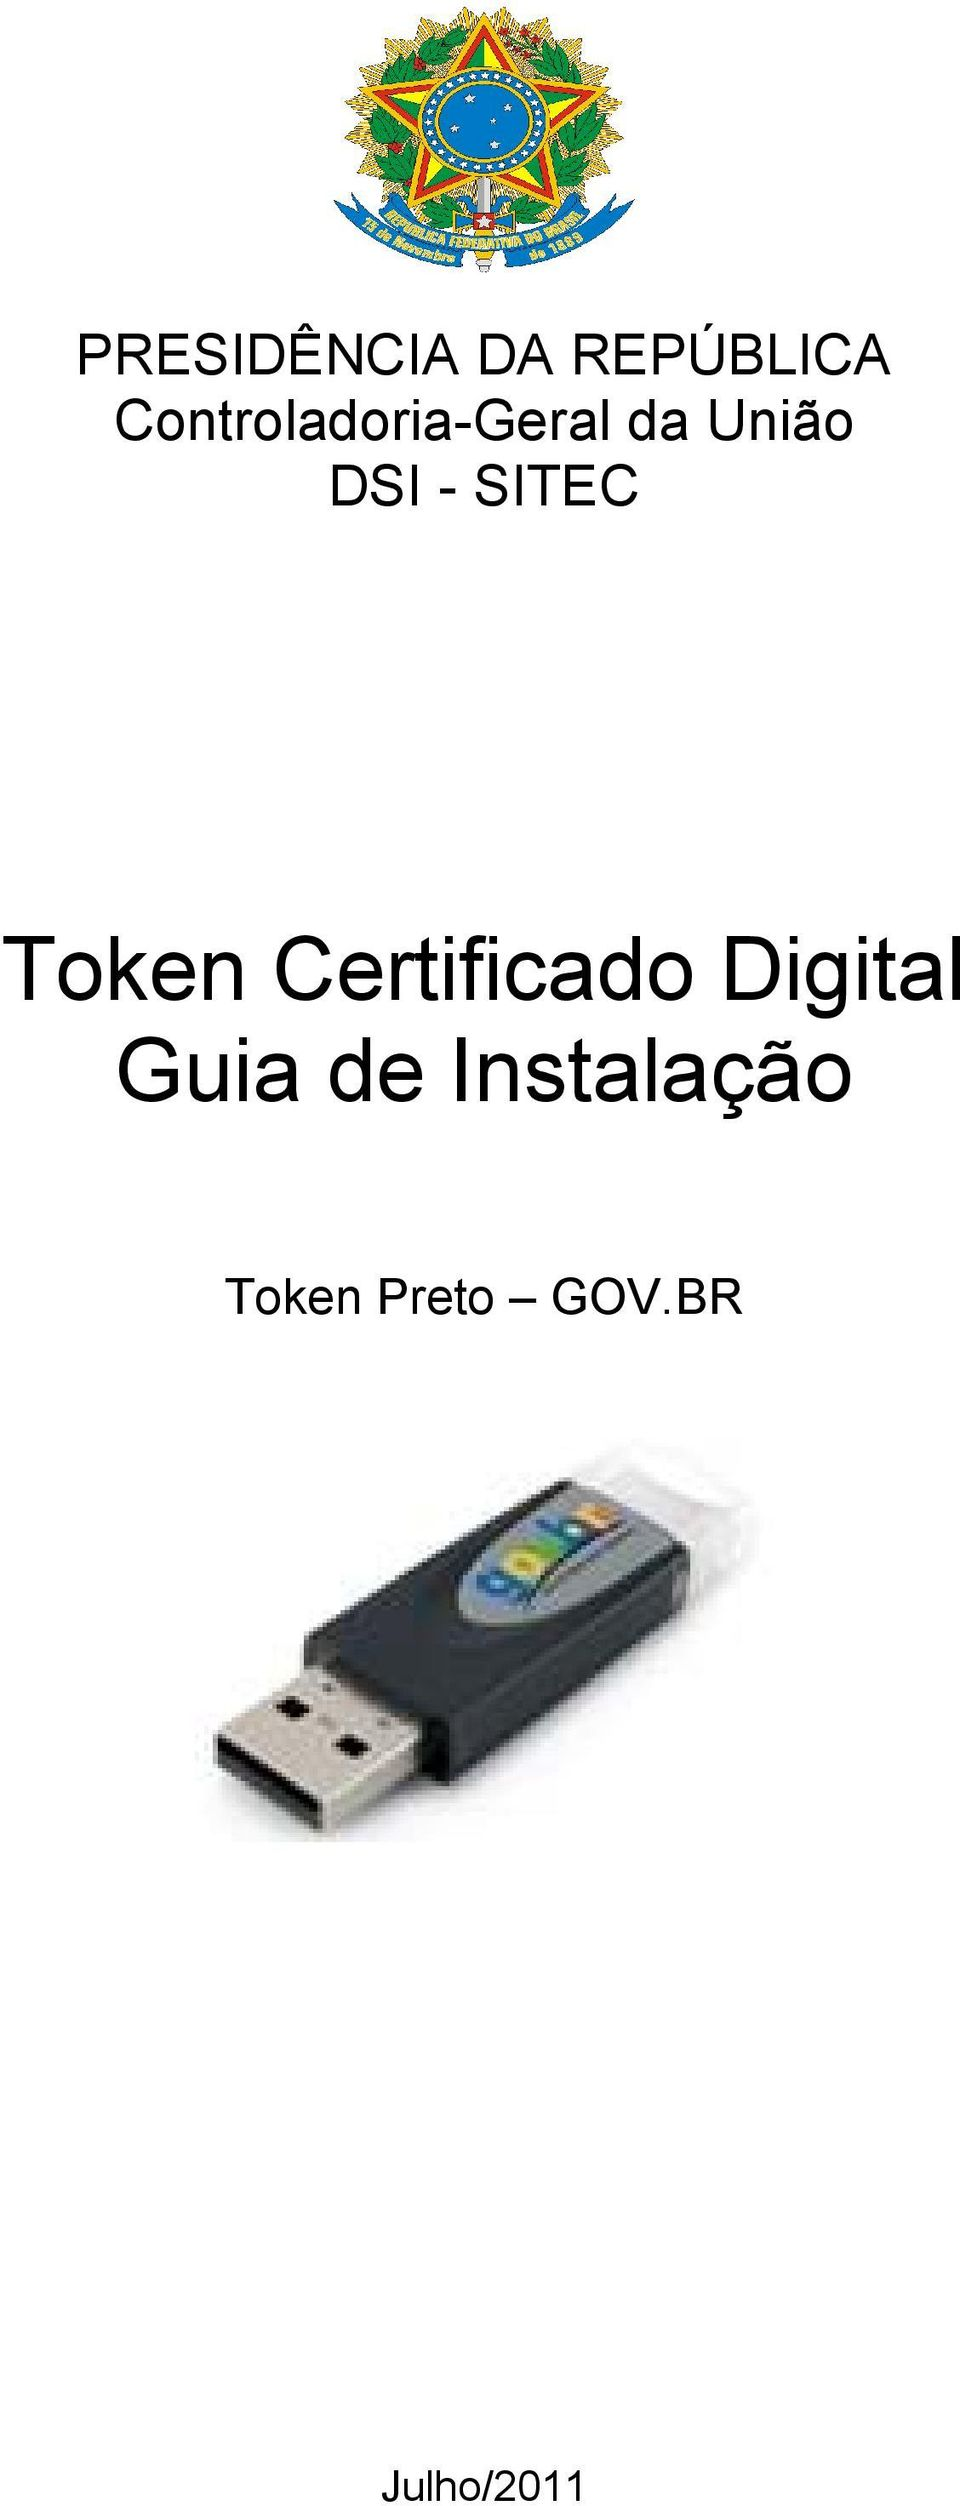 SITEC Token Certificado Digital